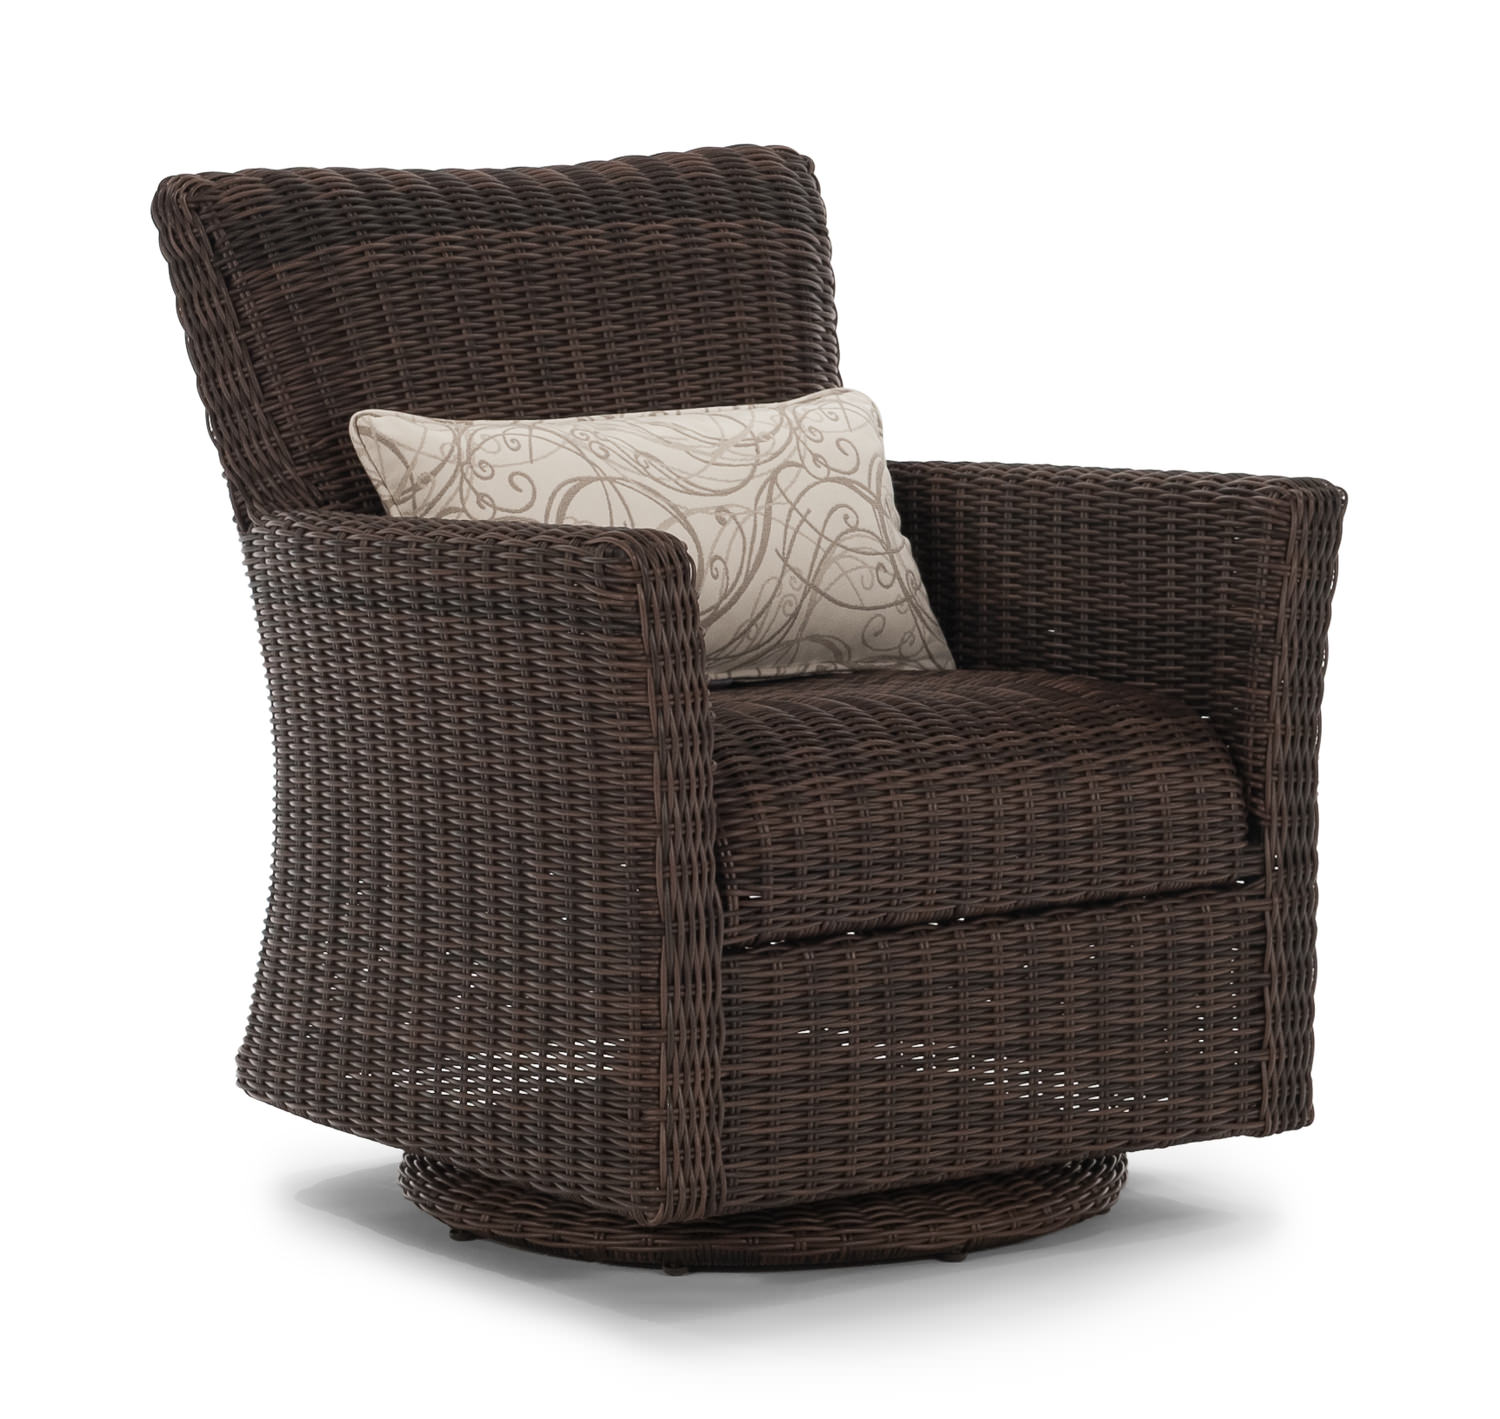 Cana Swivel Lounge Outdoor Wicker by Thomas Cole